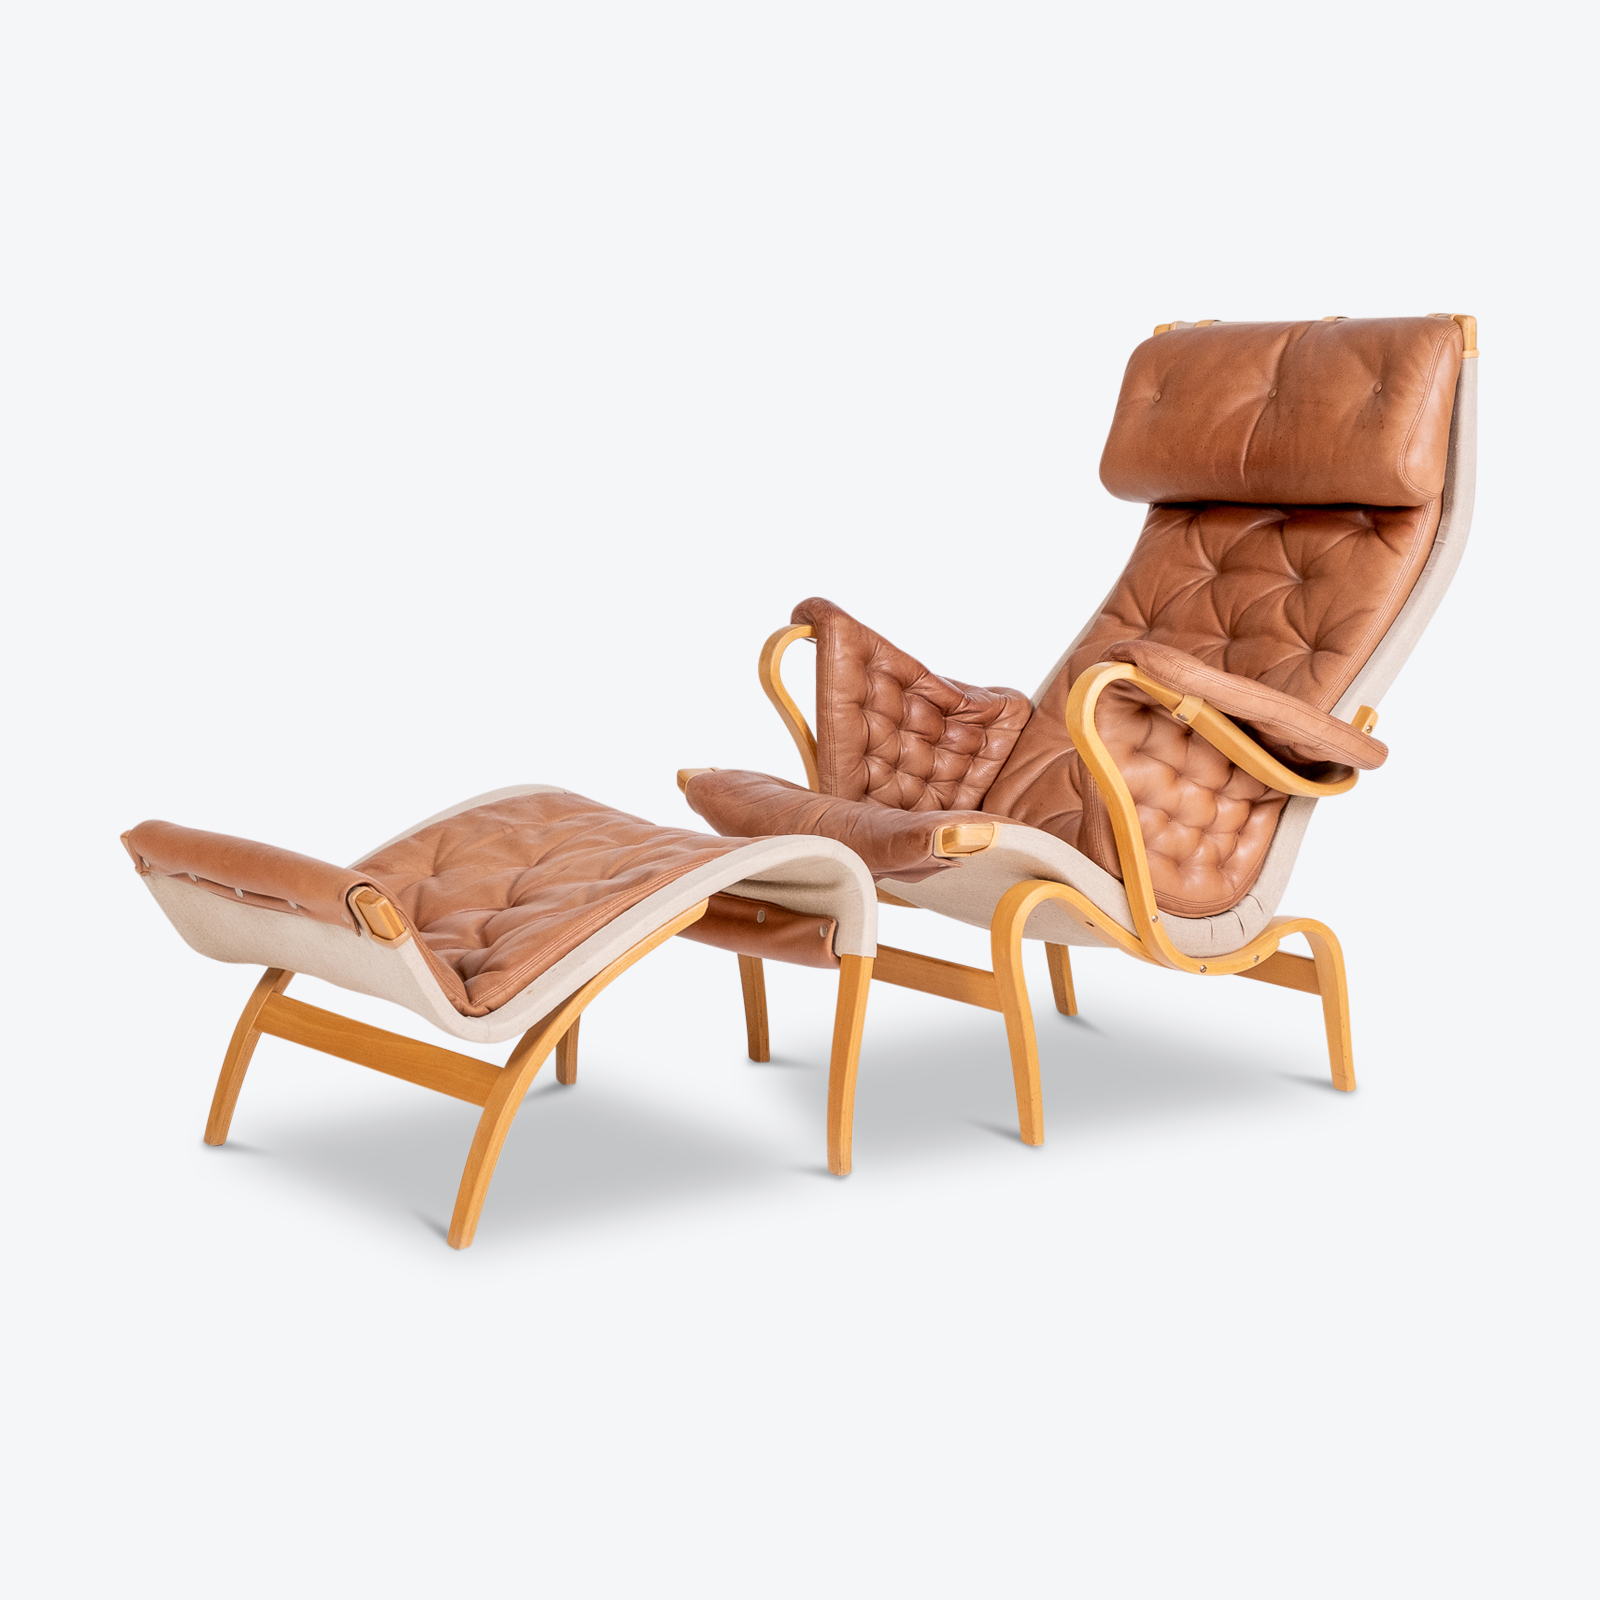 Pernilla 69 Chair With Footstool By Bruno Mathsson For Dux, 1960s, Sweden Hero